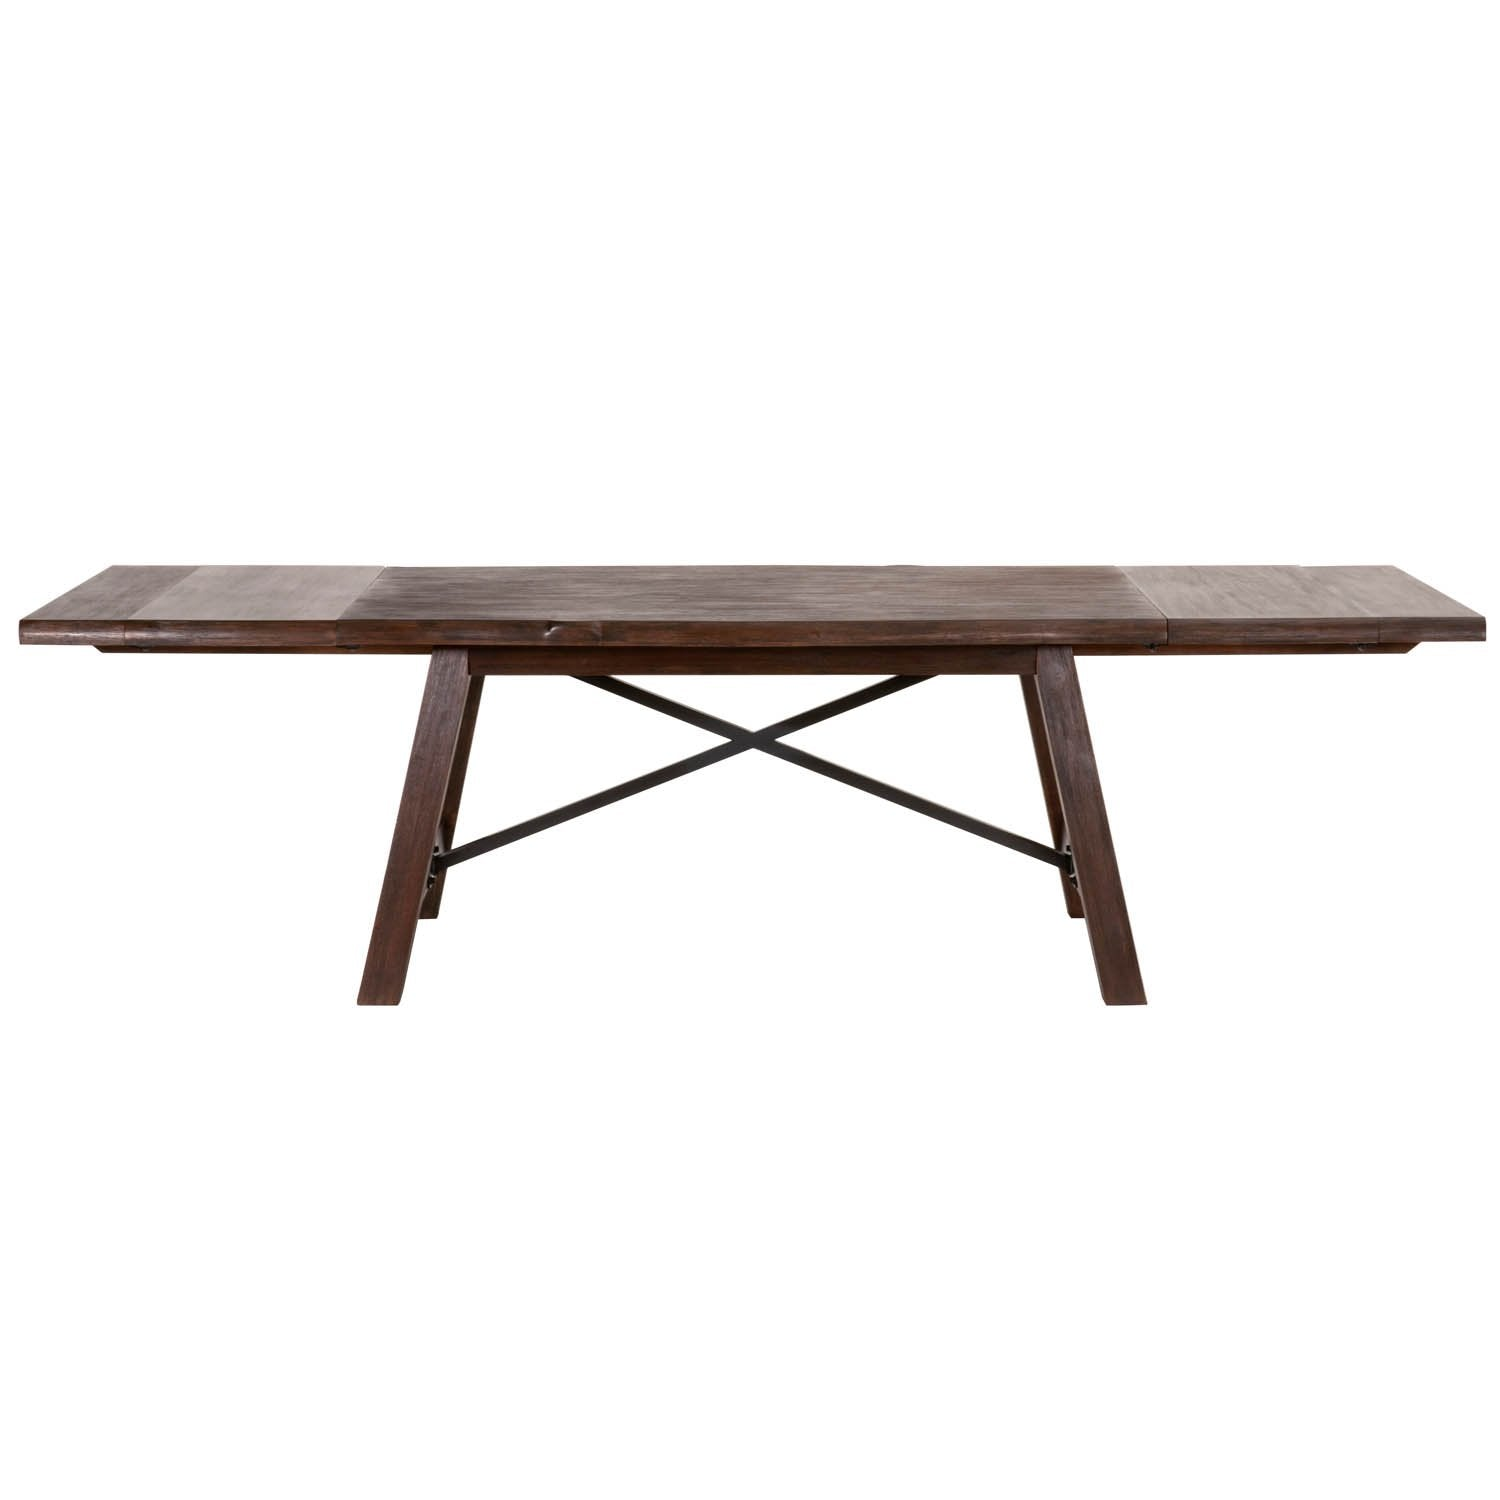 Nixon Extension Dining Table in Rustic Java